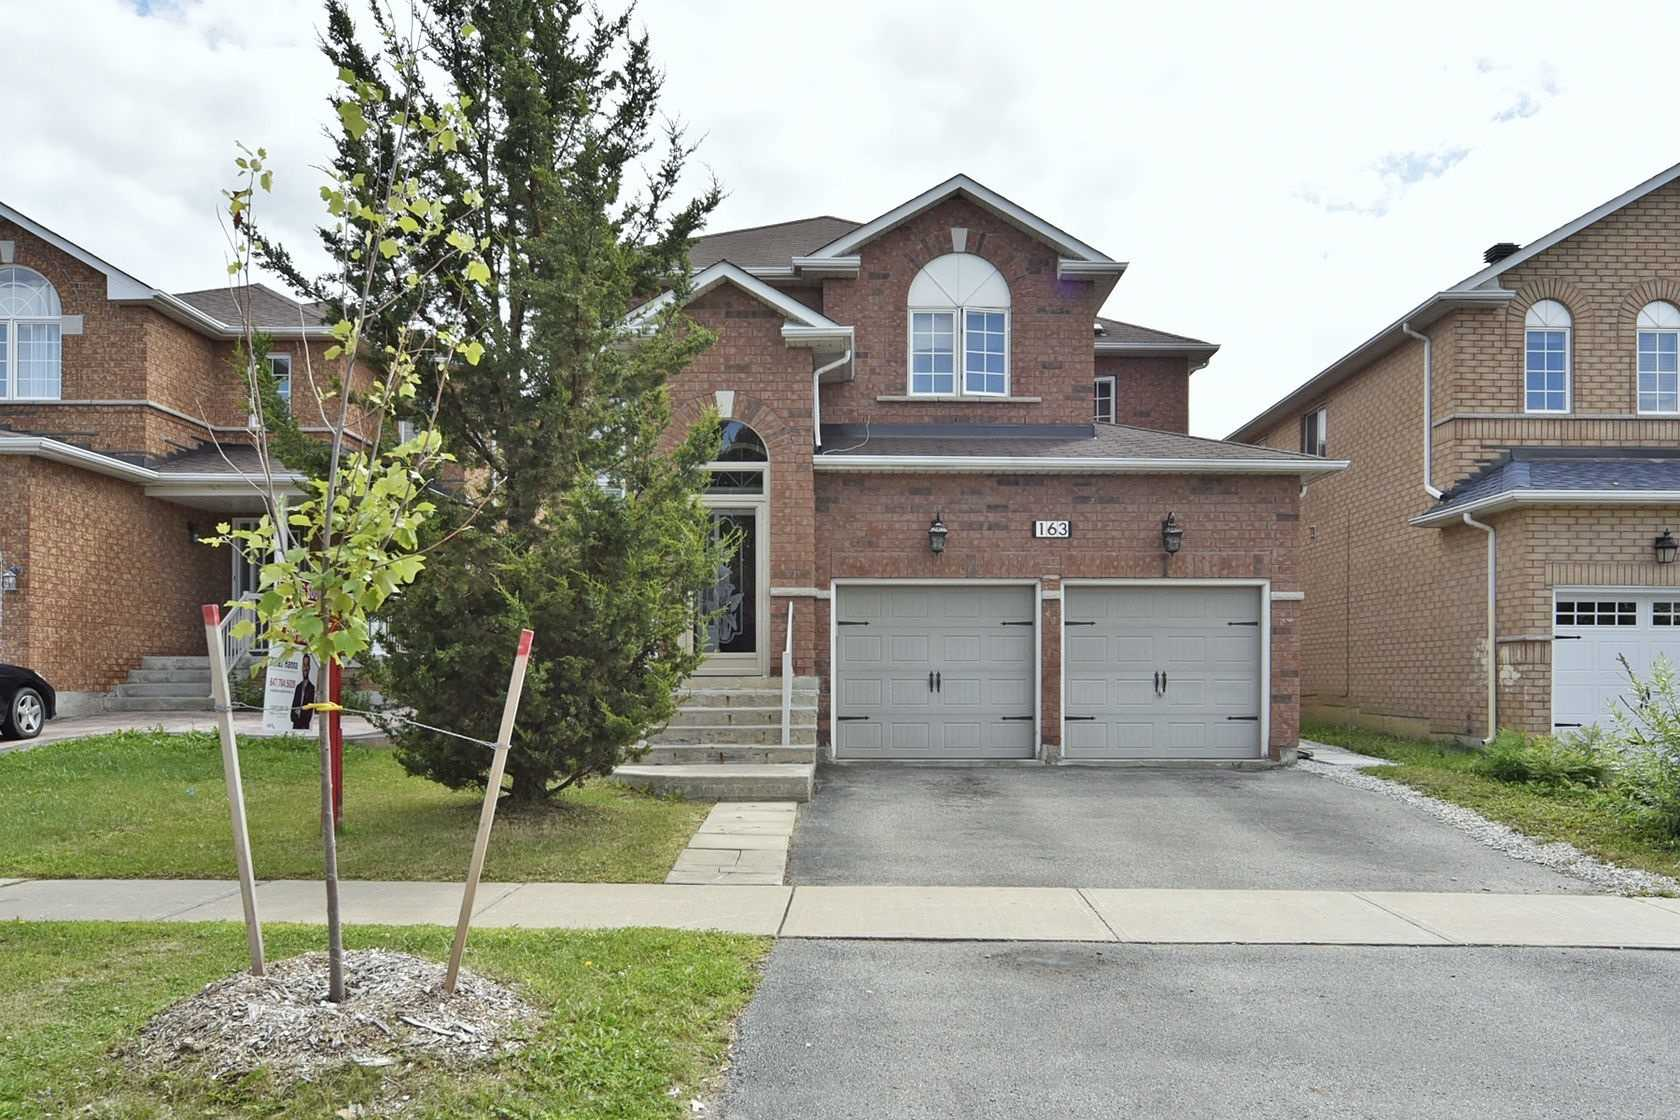 163 Drummond Dr, Vaughan, Ontario L6A 3C4 -image1